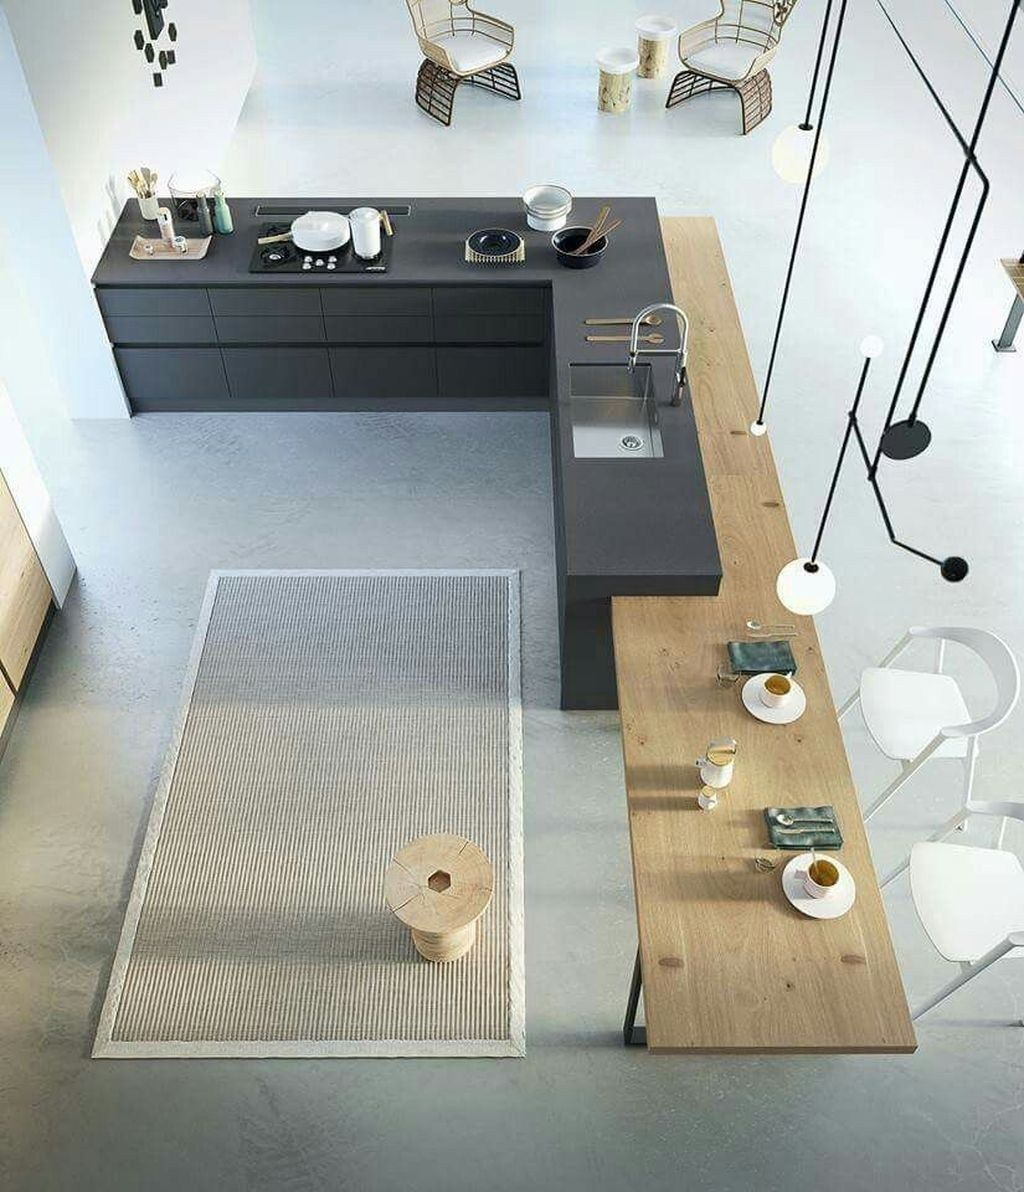 3 meter küchendesign  practical kitchen ideas you will definitely like  dream home